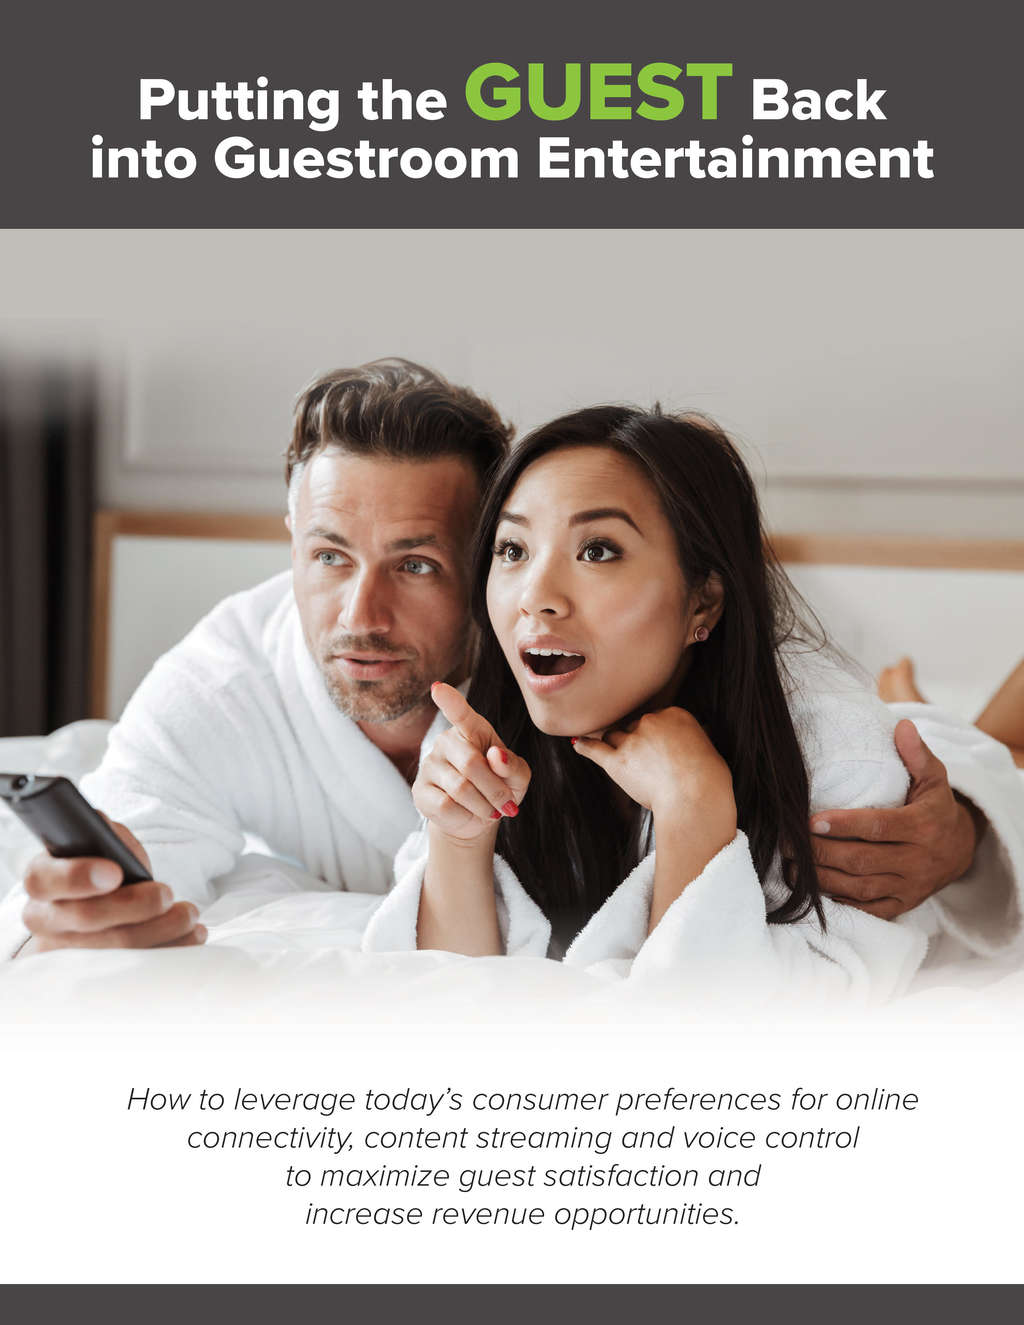 Hotel Internet Services Unveils New Research Report on